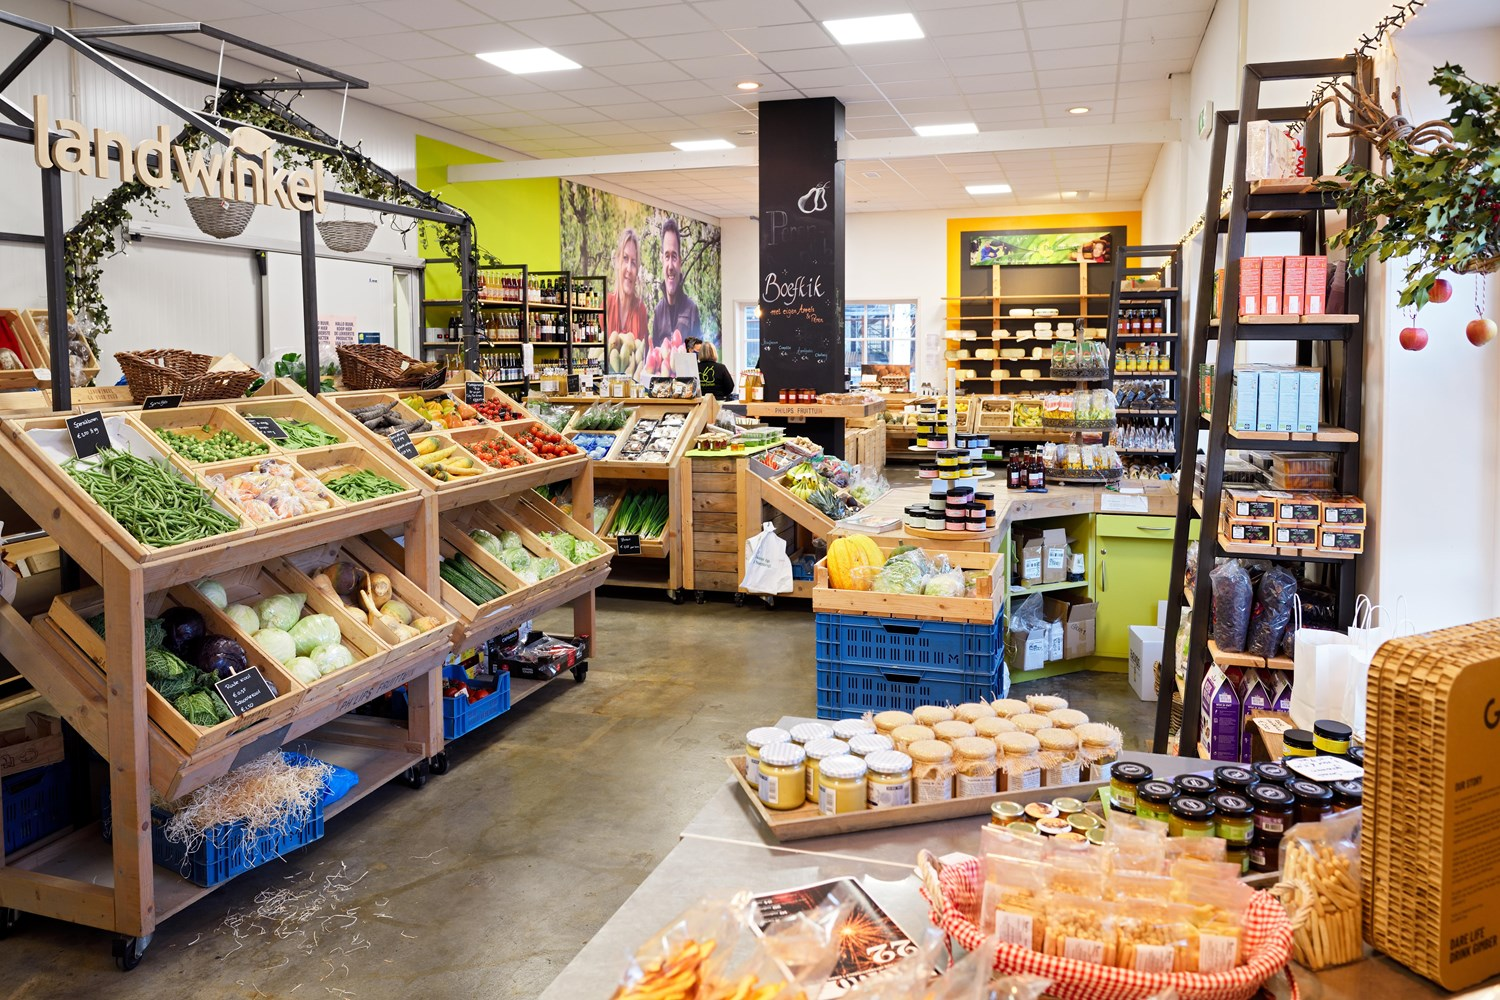 Landwinkel Philips Fruittuin - Rijp - Brabant Brand Box